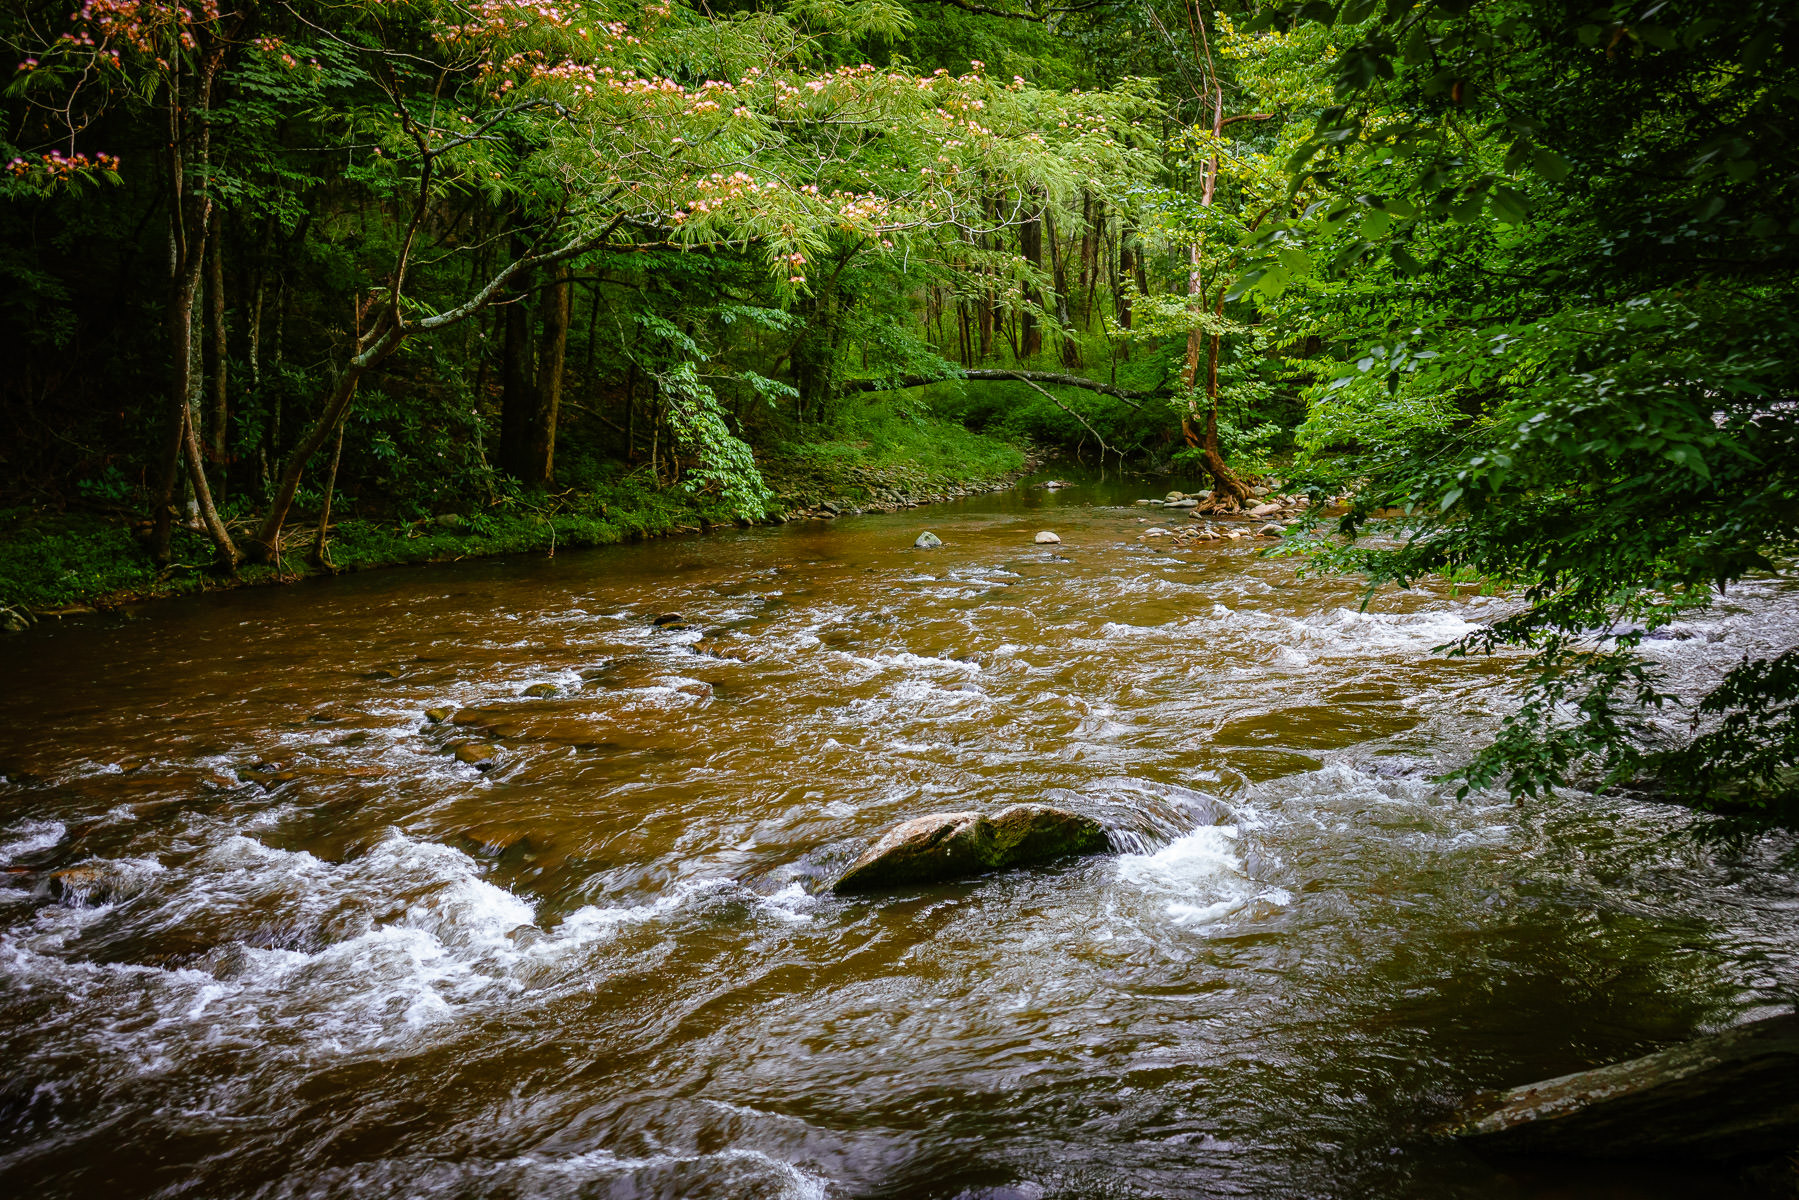 A stream flows through the forest of Tennessee's Great Smoky Mountains National Park.